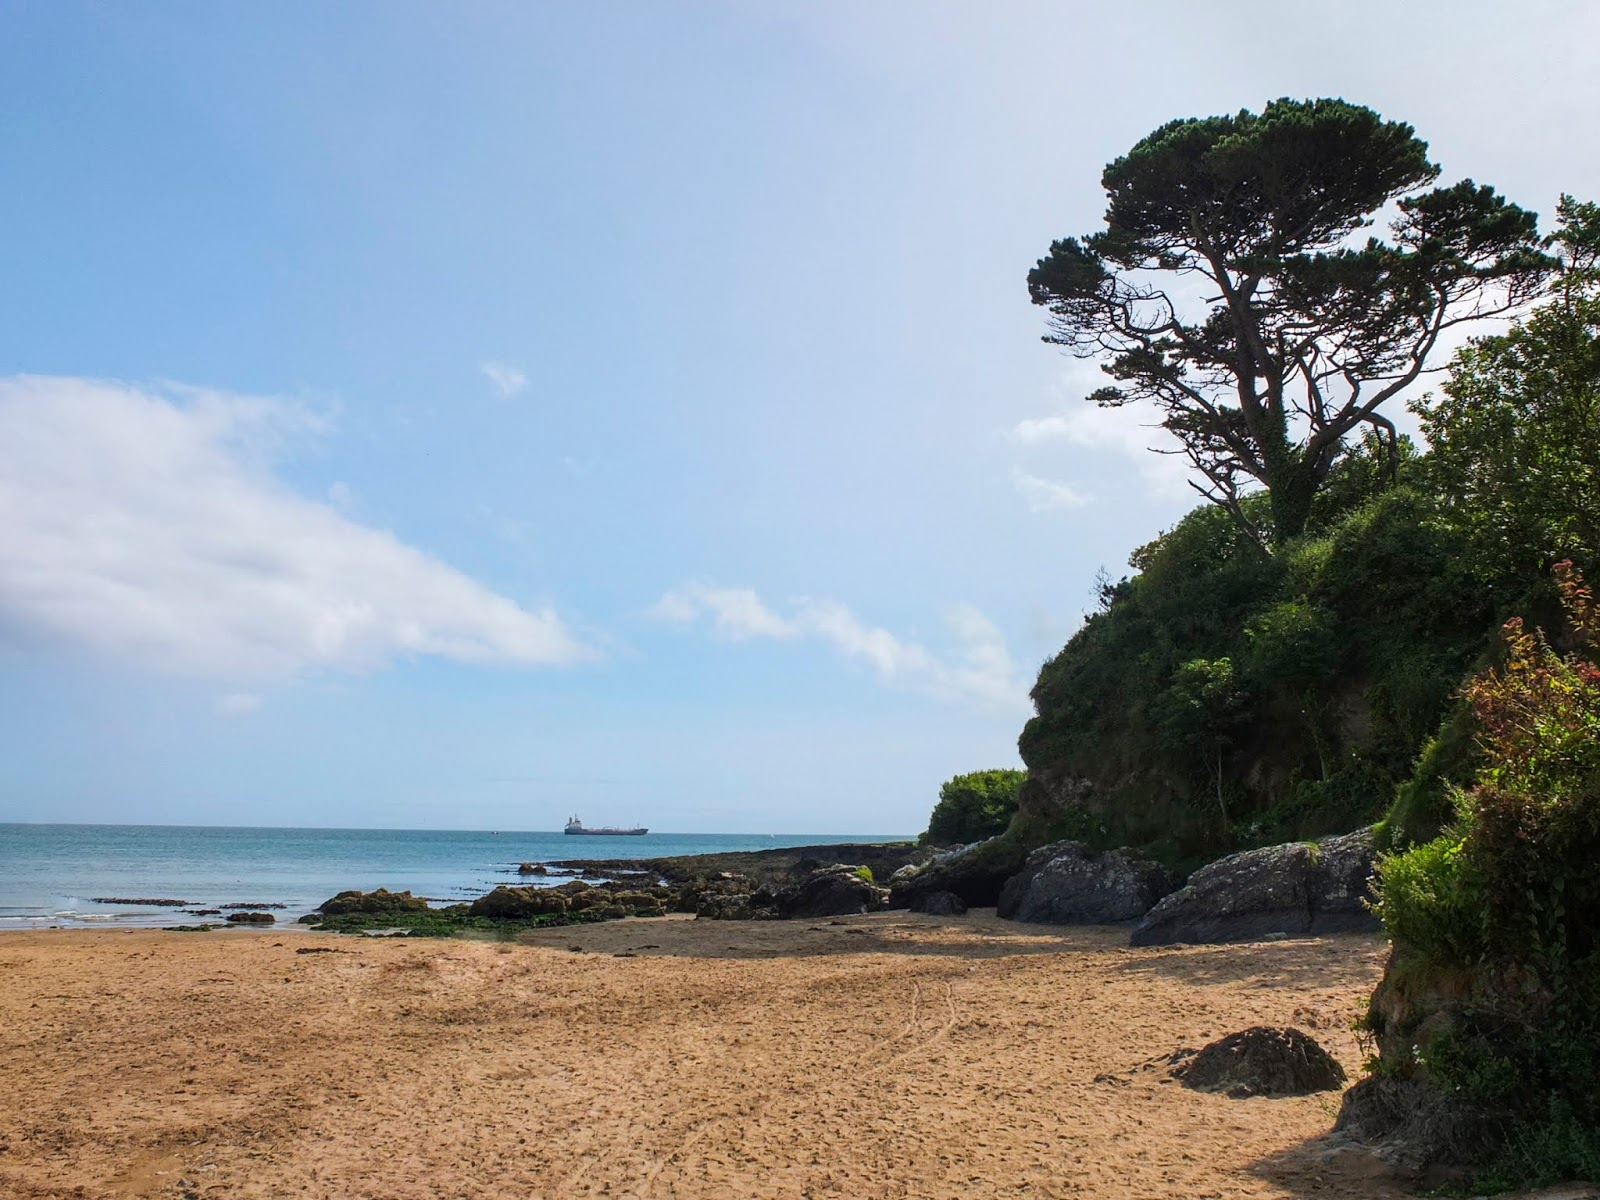 A beach cove in Fountainstown, County Cork on a sunny August day.